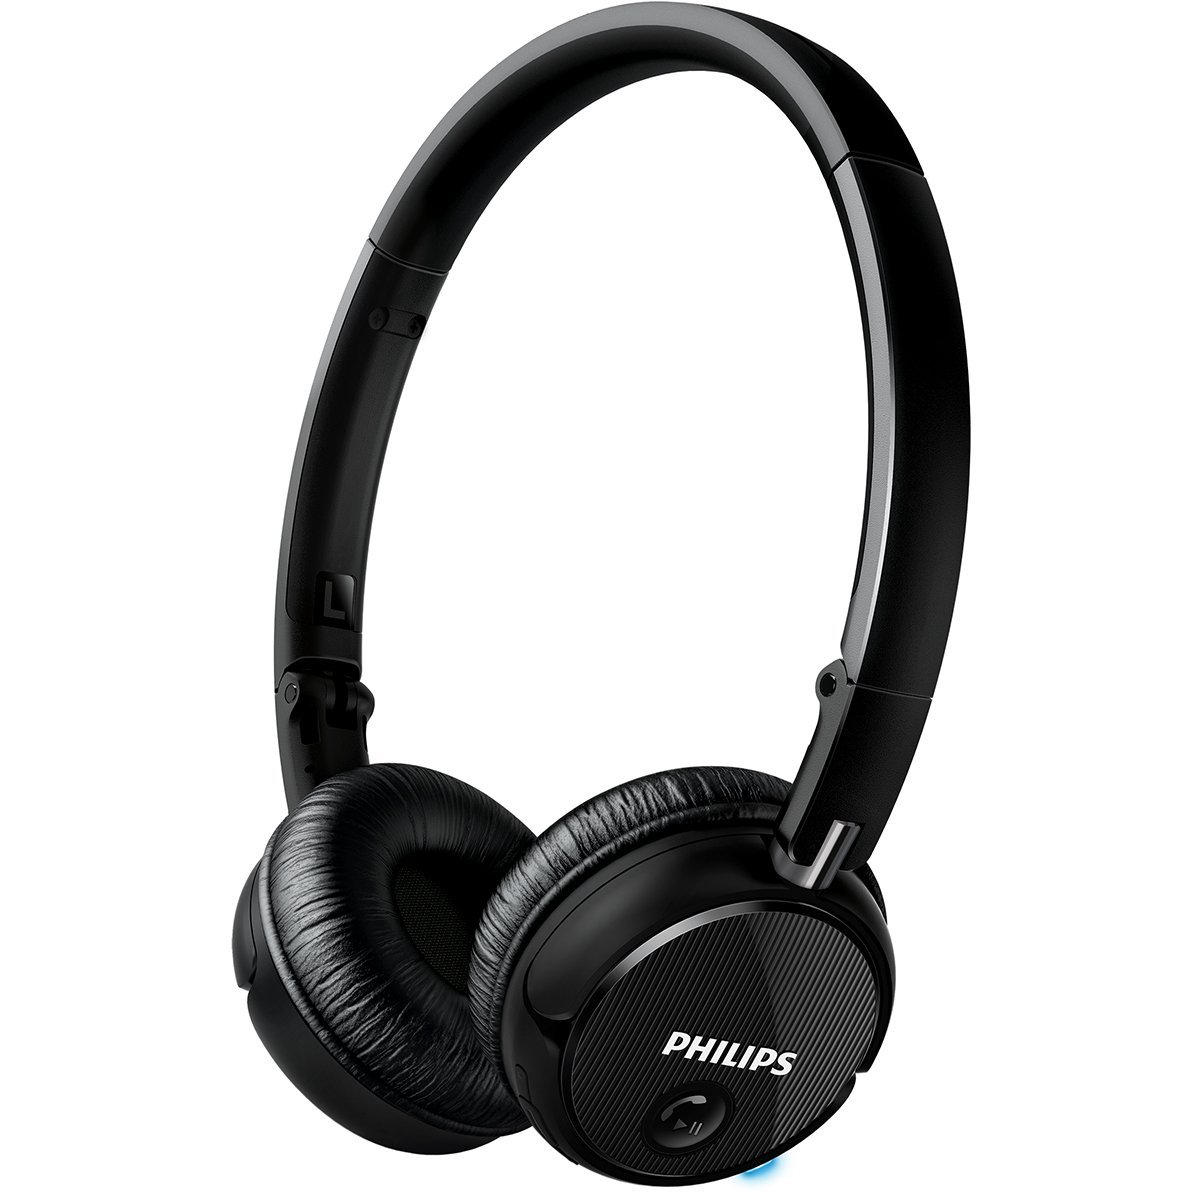 Philips Shb6250/27 Wireless Bluetooth Headphones, Black